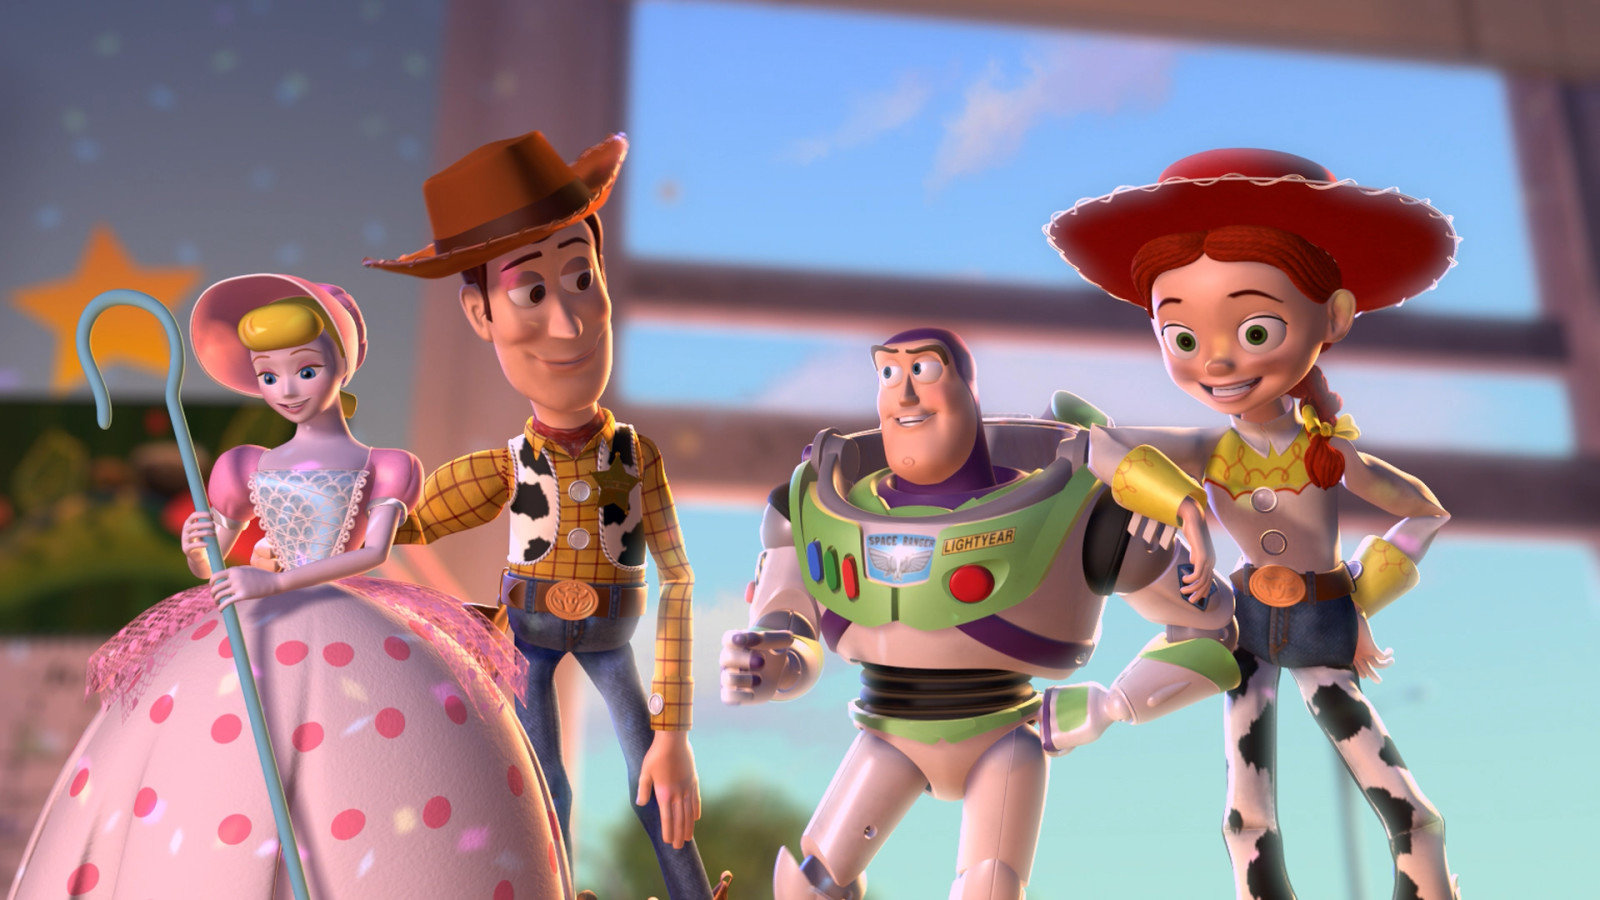 Free Download Toy Story Wallpaper Id166275 Hd 1600x900 For